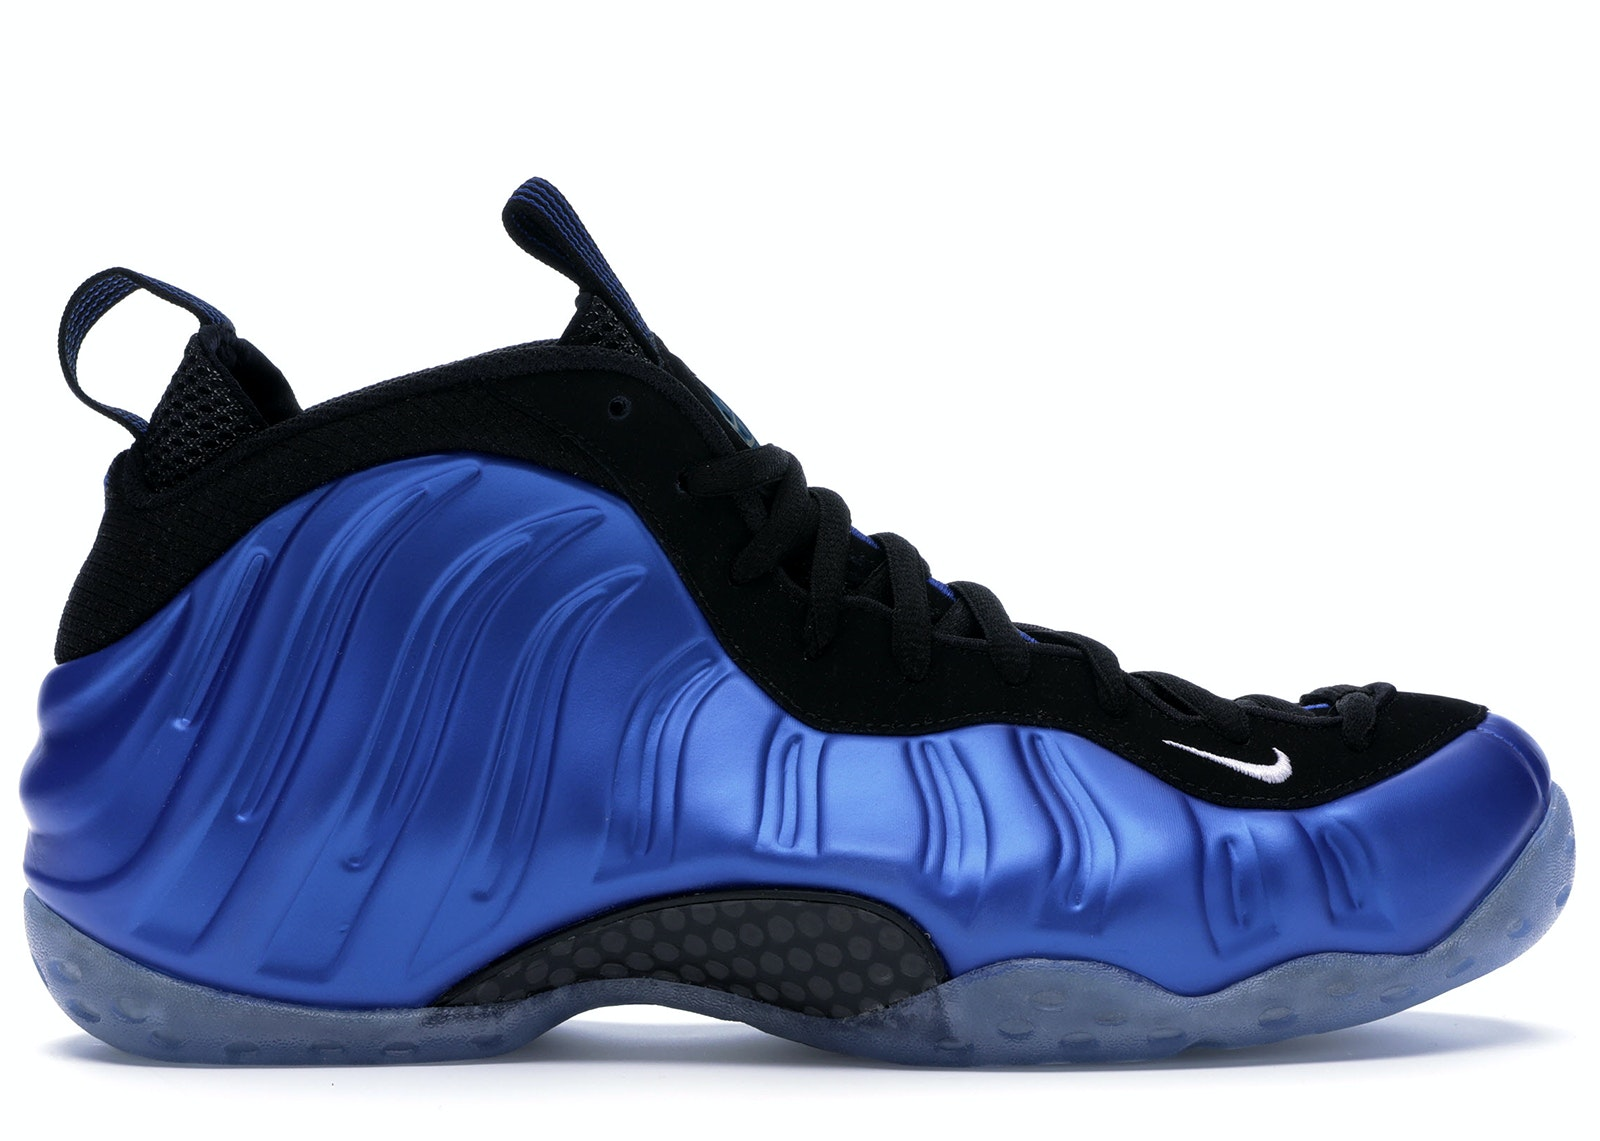 Air Foamposite One Royal Blue XX 20th Anniversary (2017)